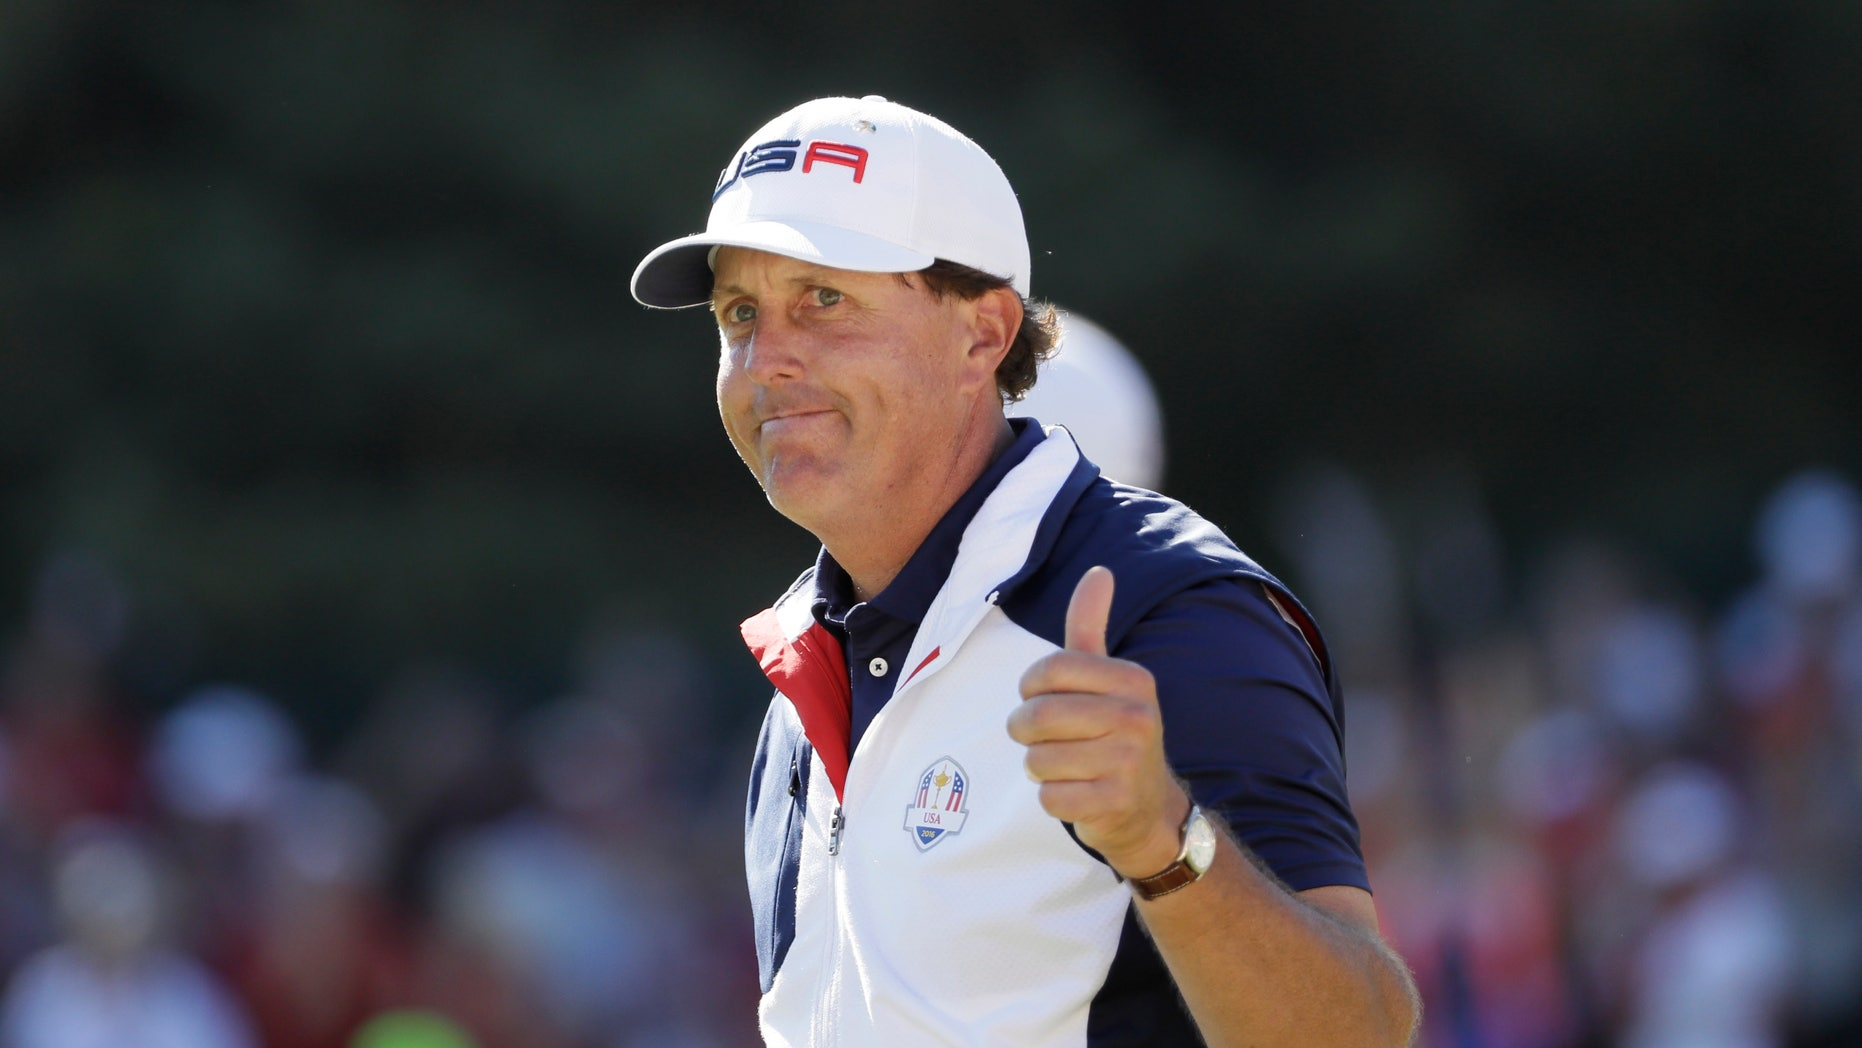 Phil Mickelson gives a thumbs up after playing the 15th hole during a singles match at the Ryder Cup tournament.